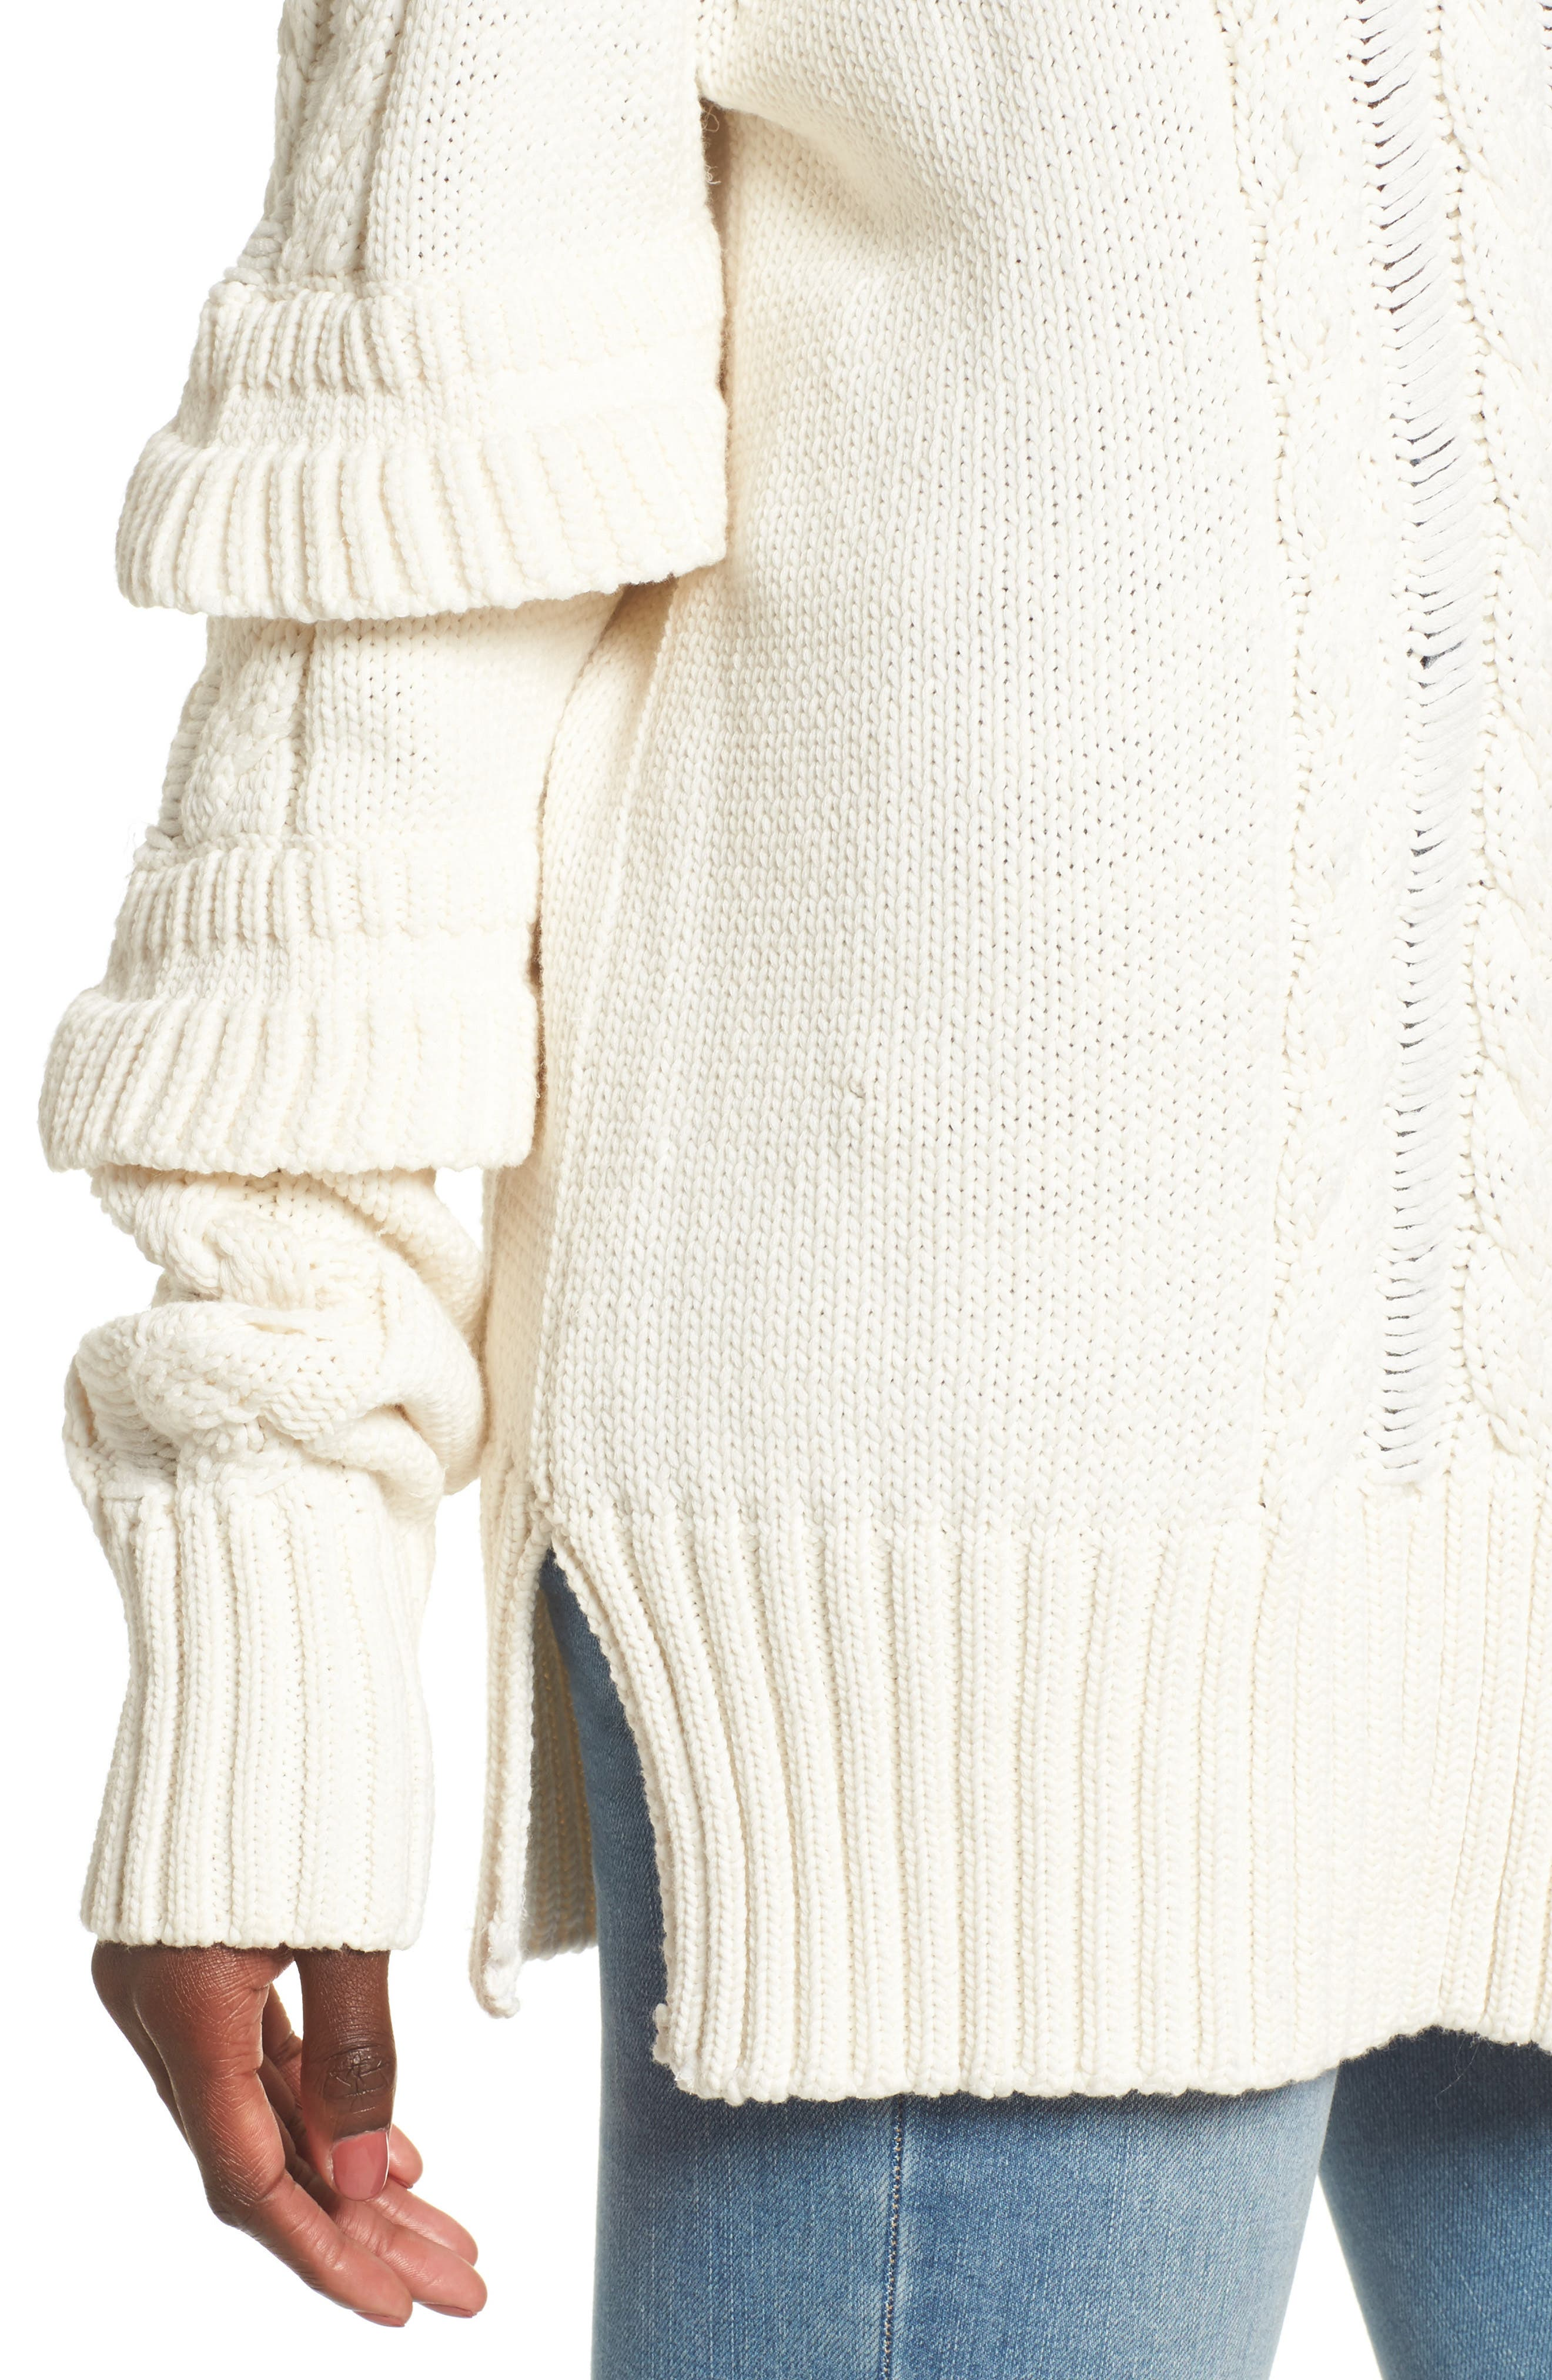 Ruffle Sleeve Cable Knit Sweater,                             Alternate thumbnail 4, color,                             Just For Kicks/ Ivory